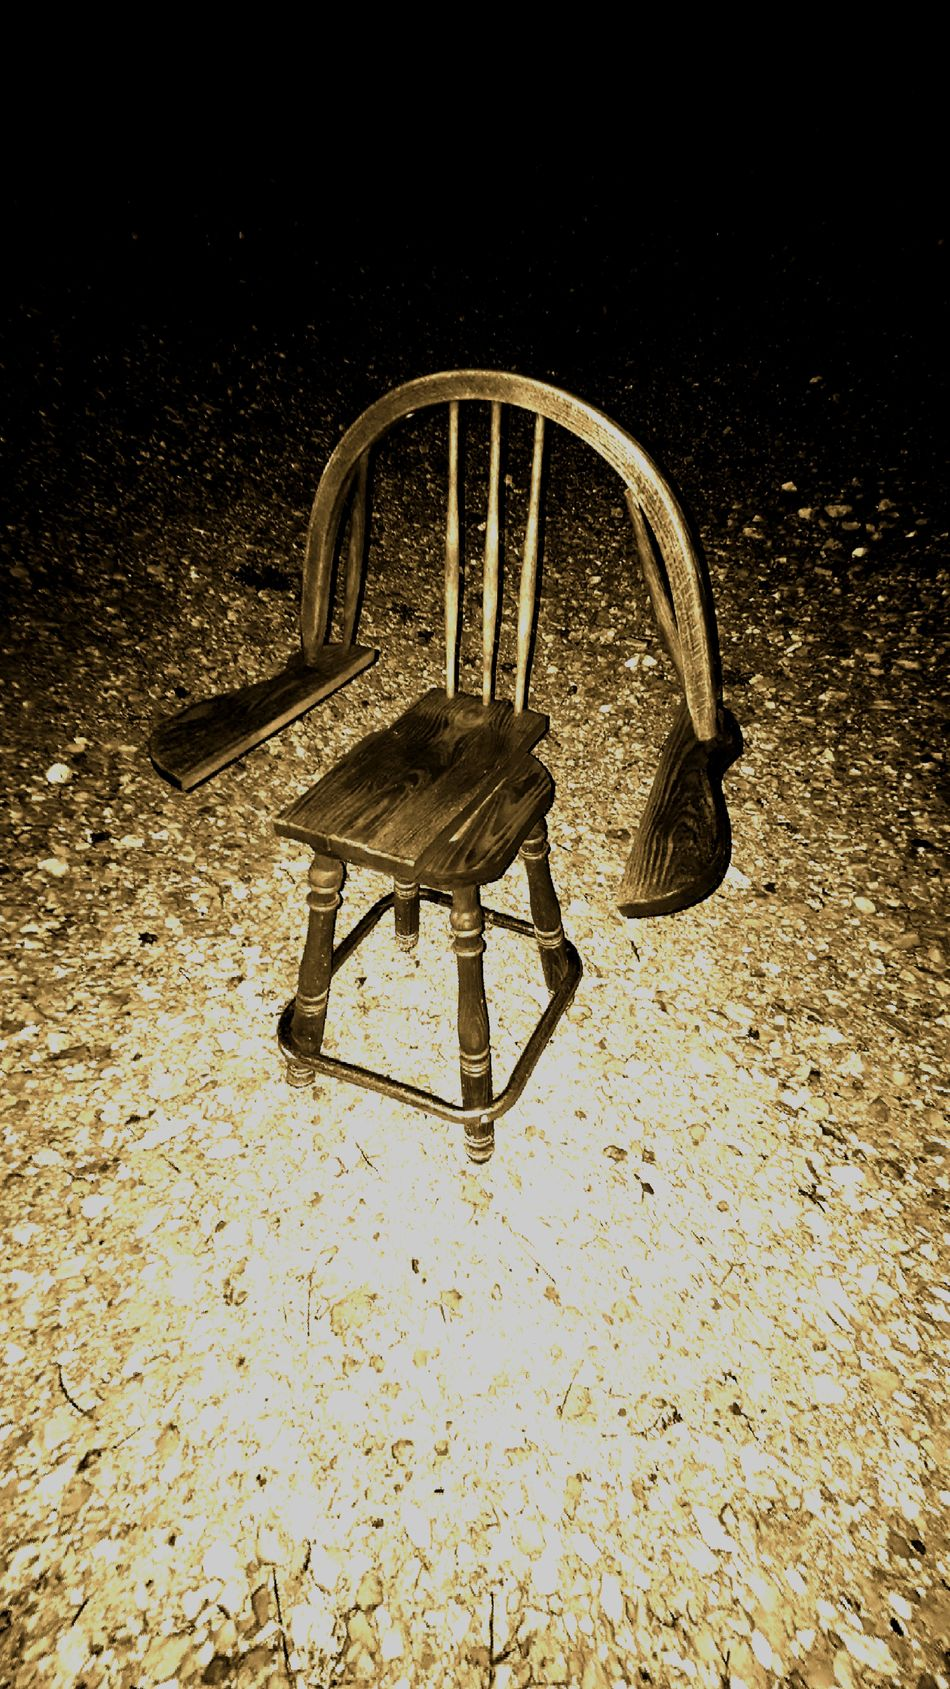 No People Noirlover Deformity Oddity Black And White Photography Noiretblanc, Blackandwhite Surrealistic Surrealism Photography Dreamlike Surreal Interesting Perspectives Artphotography Light And Shadow ChairArt Funiture Weathered Broken Abandoned Found Object Beauty In Nature